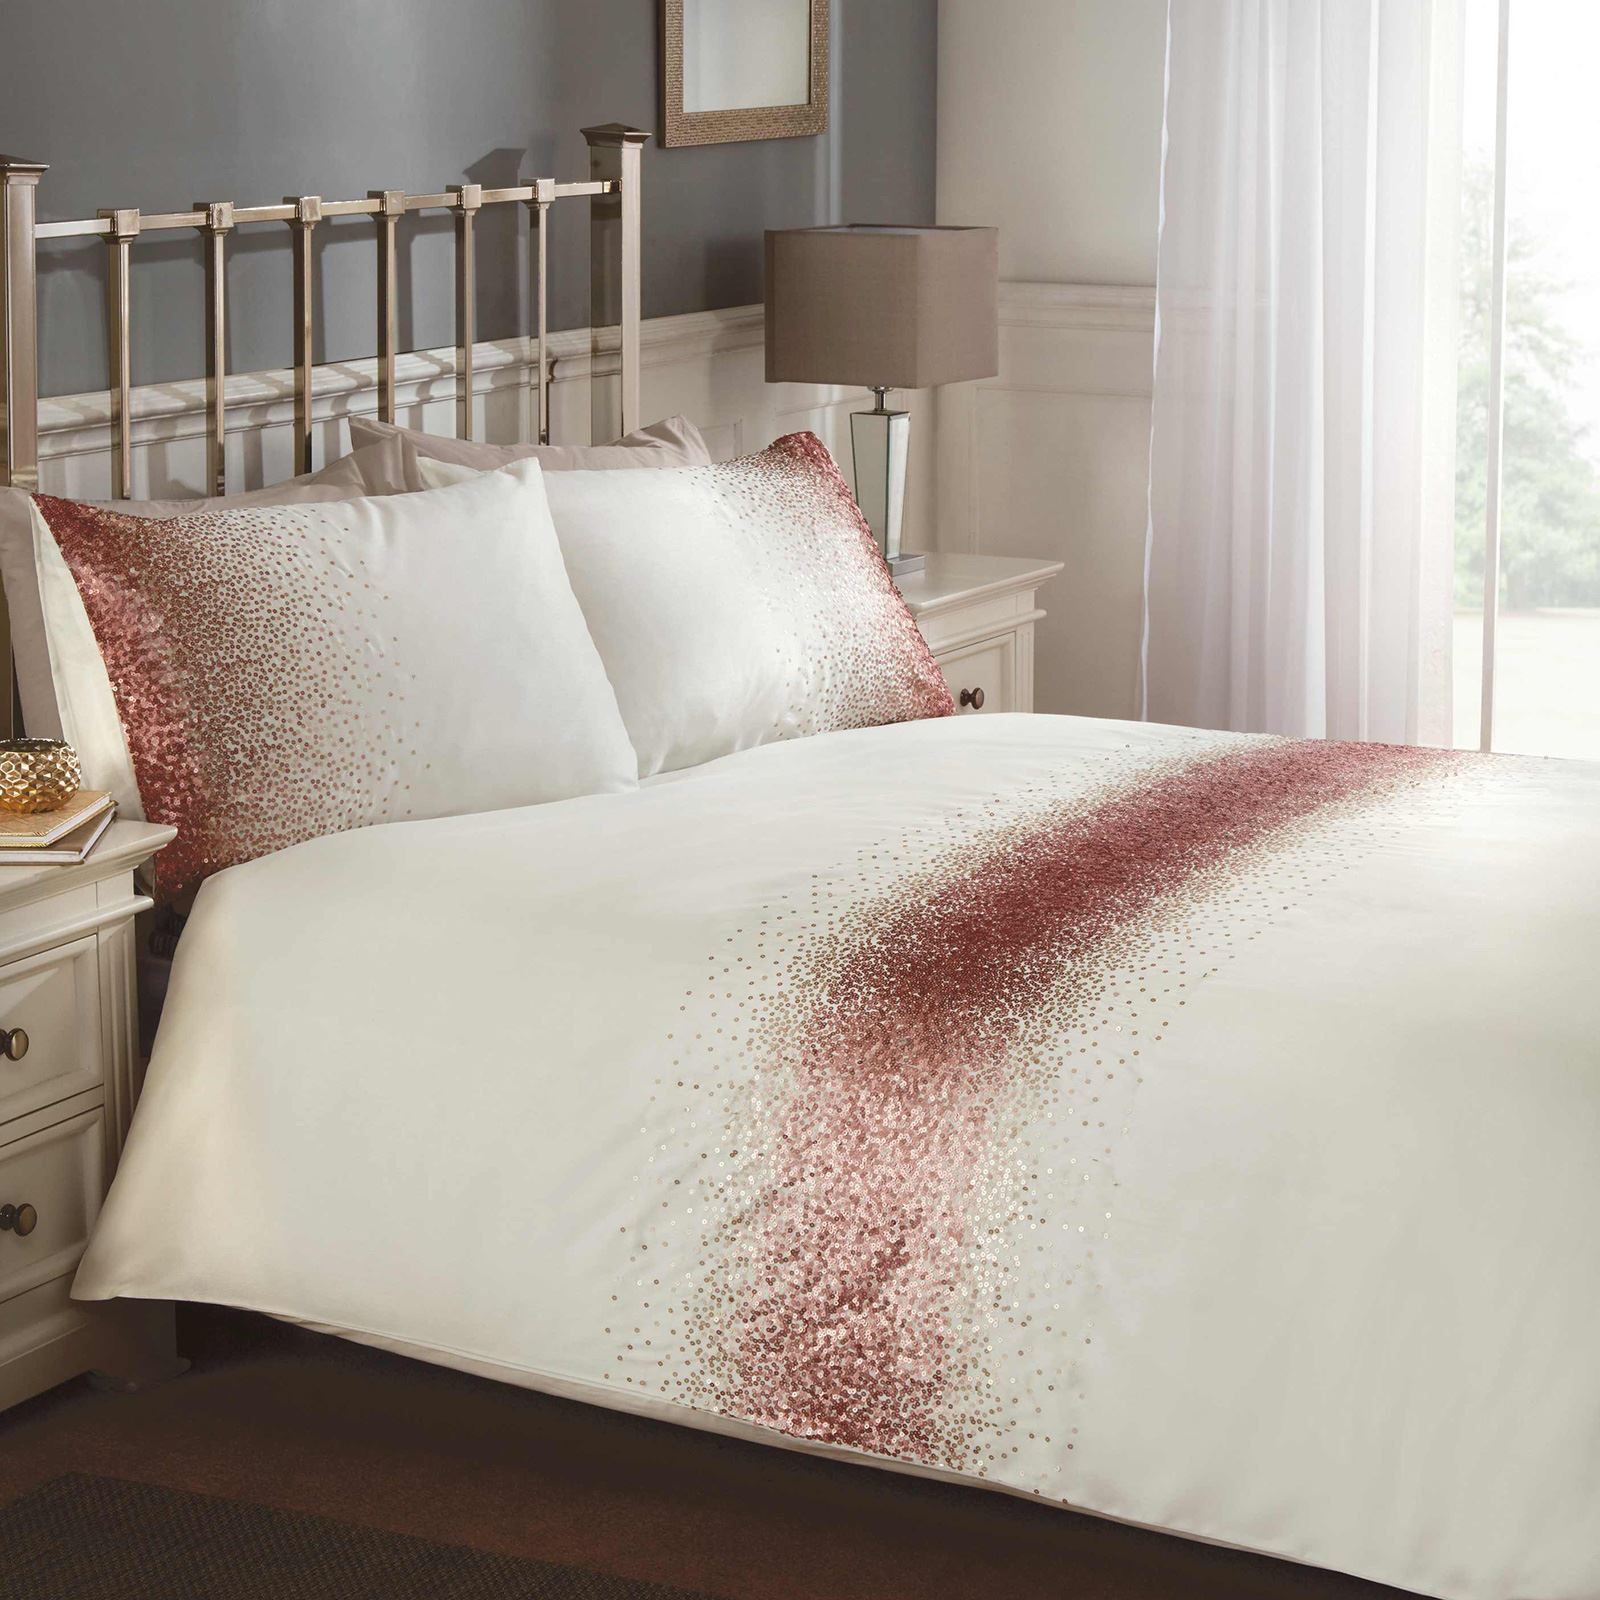 Velvet Duvet Cover Luxury Embellished Duvet Cover Sets Diamante Velvet